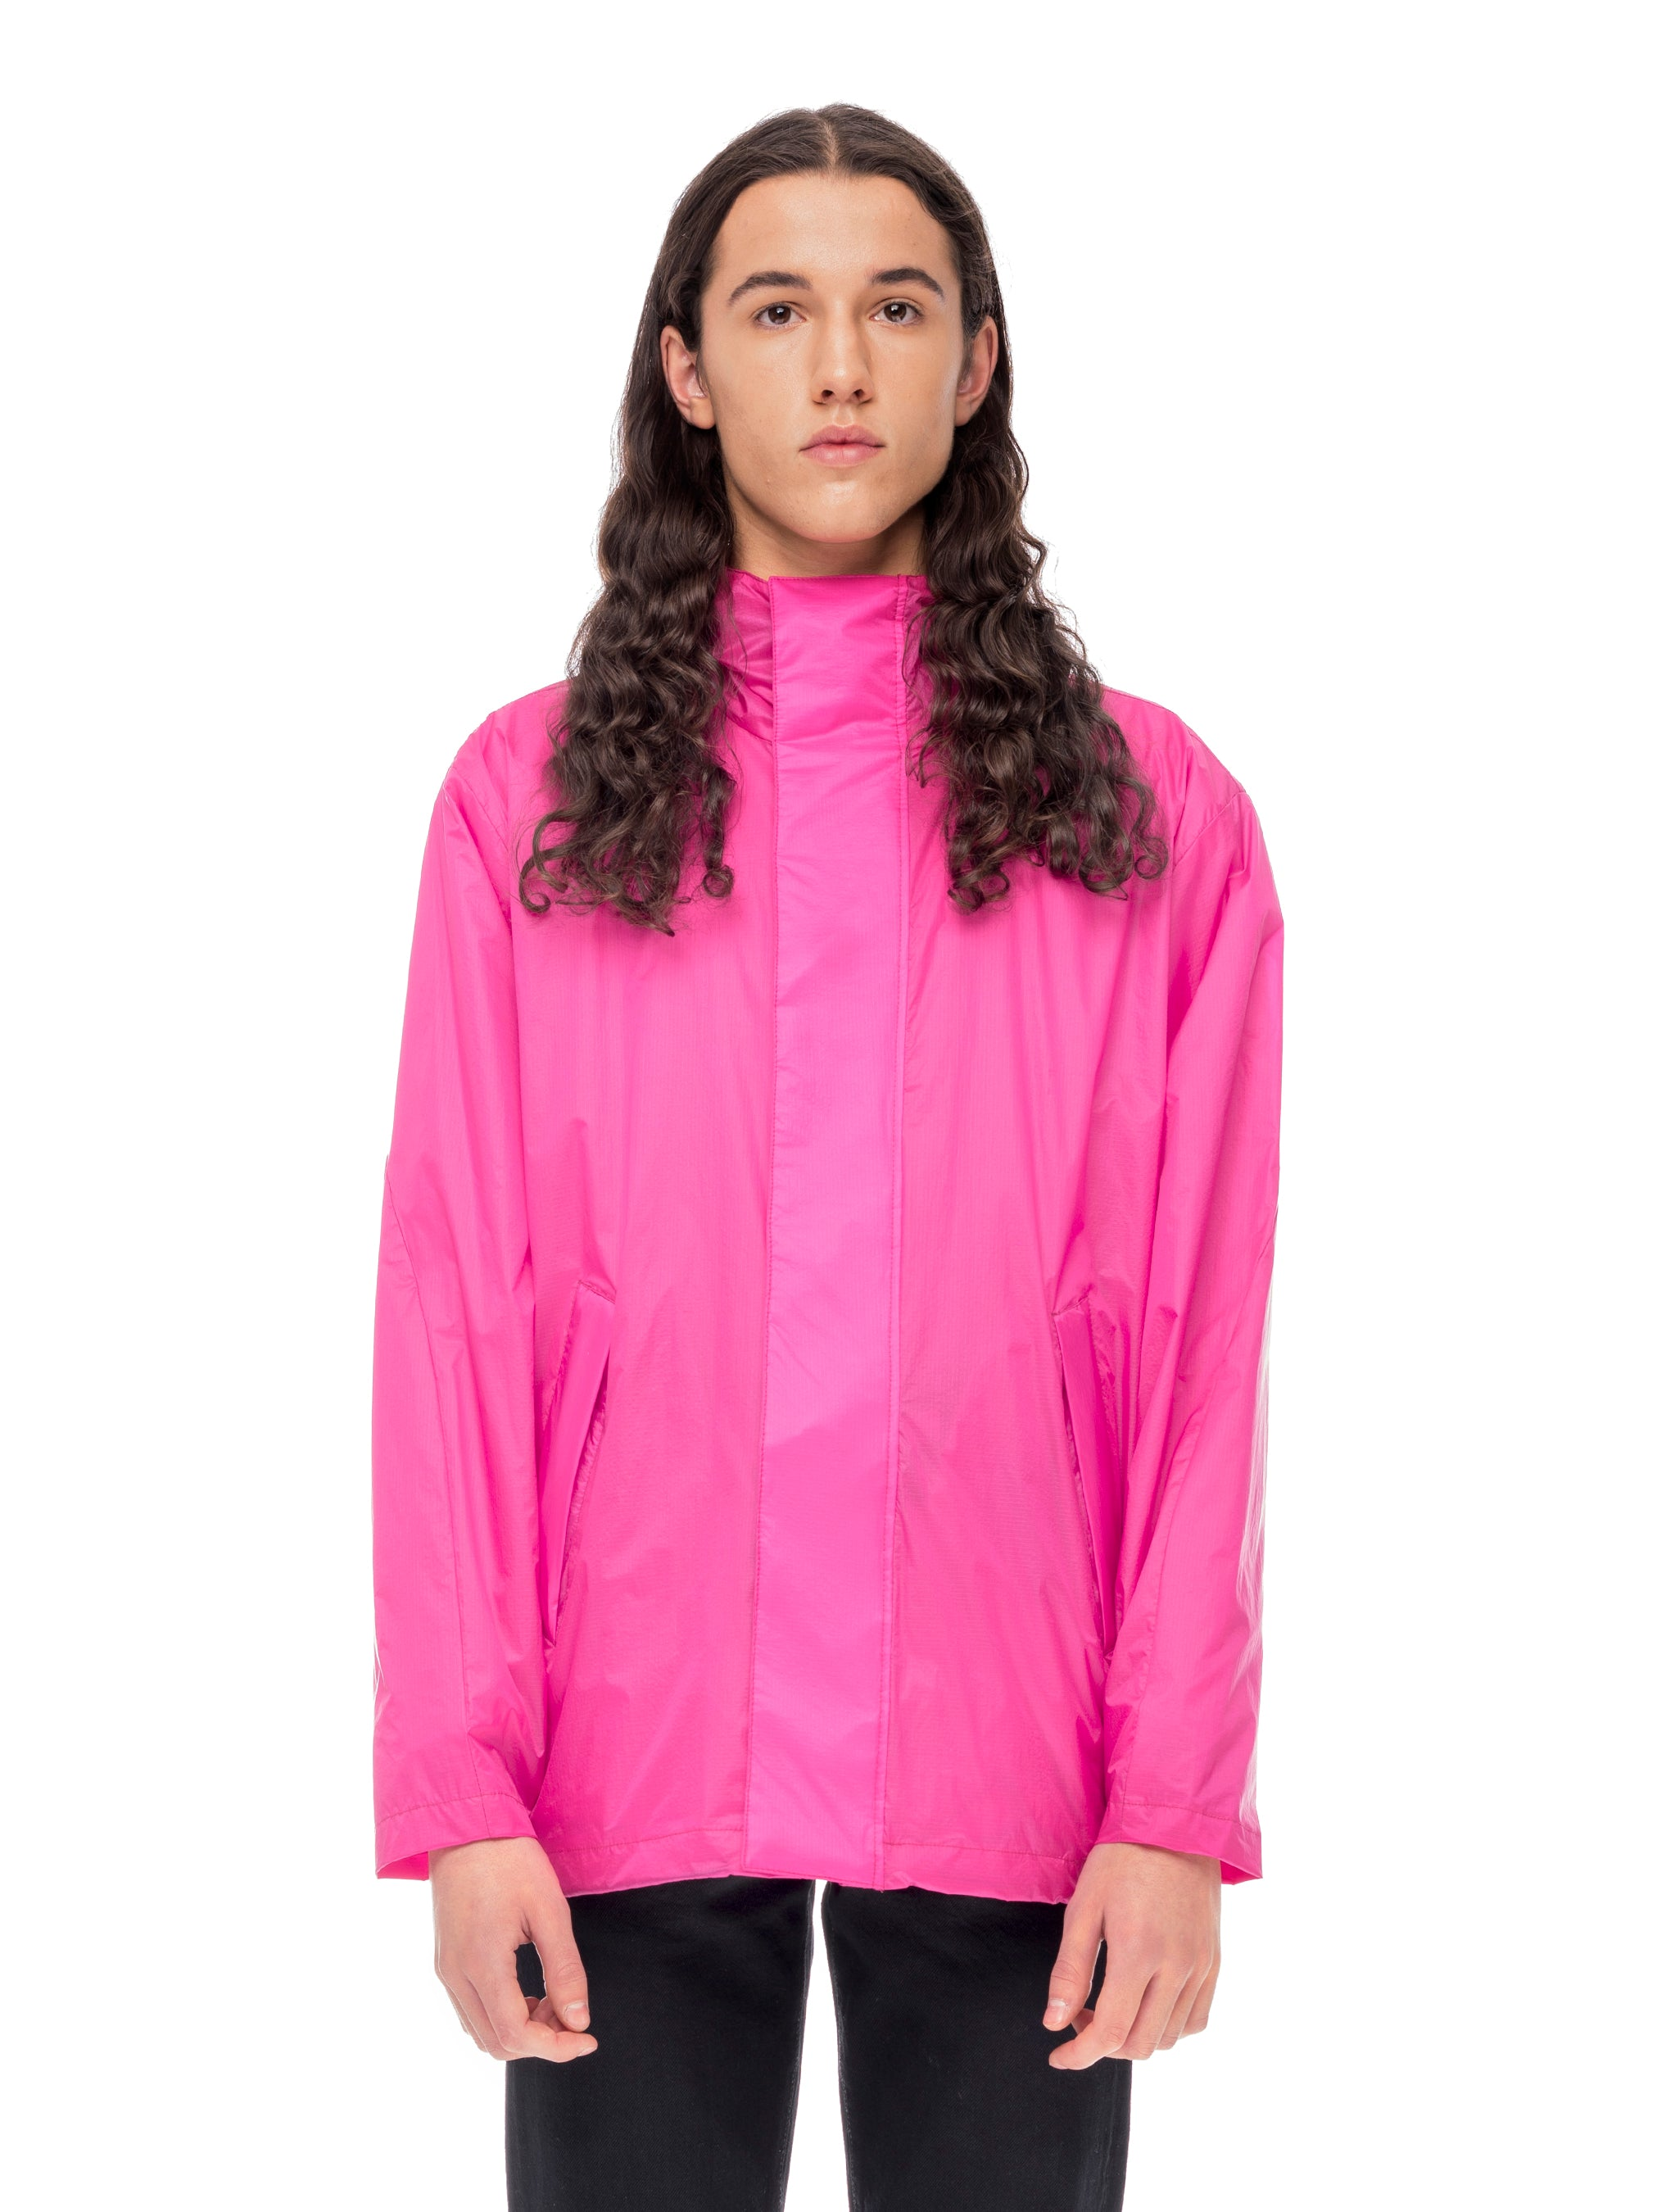 Windbreaker Hooded Windbreaker - Fuchsia [bomber_Vandal], [The Very Warm], [The Very Warm]